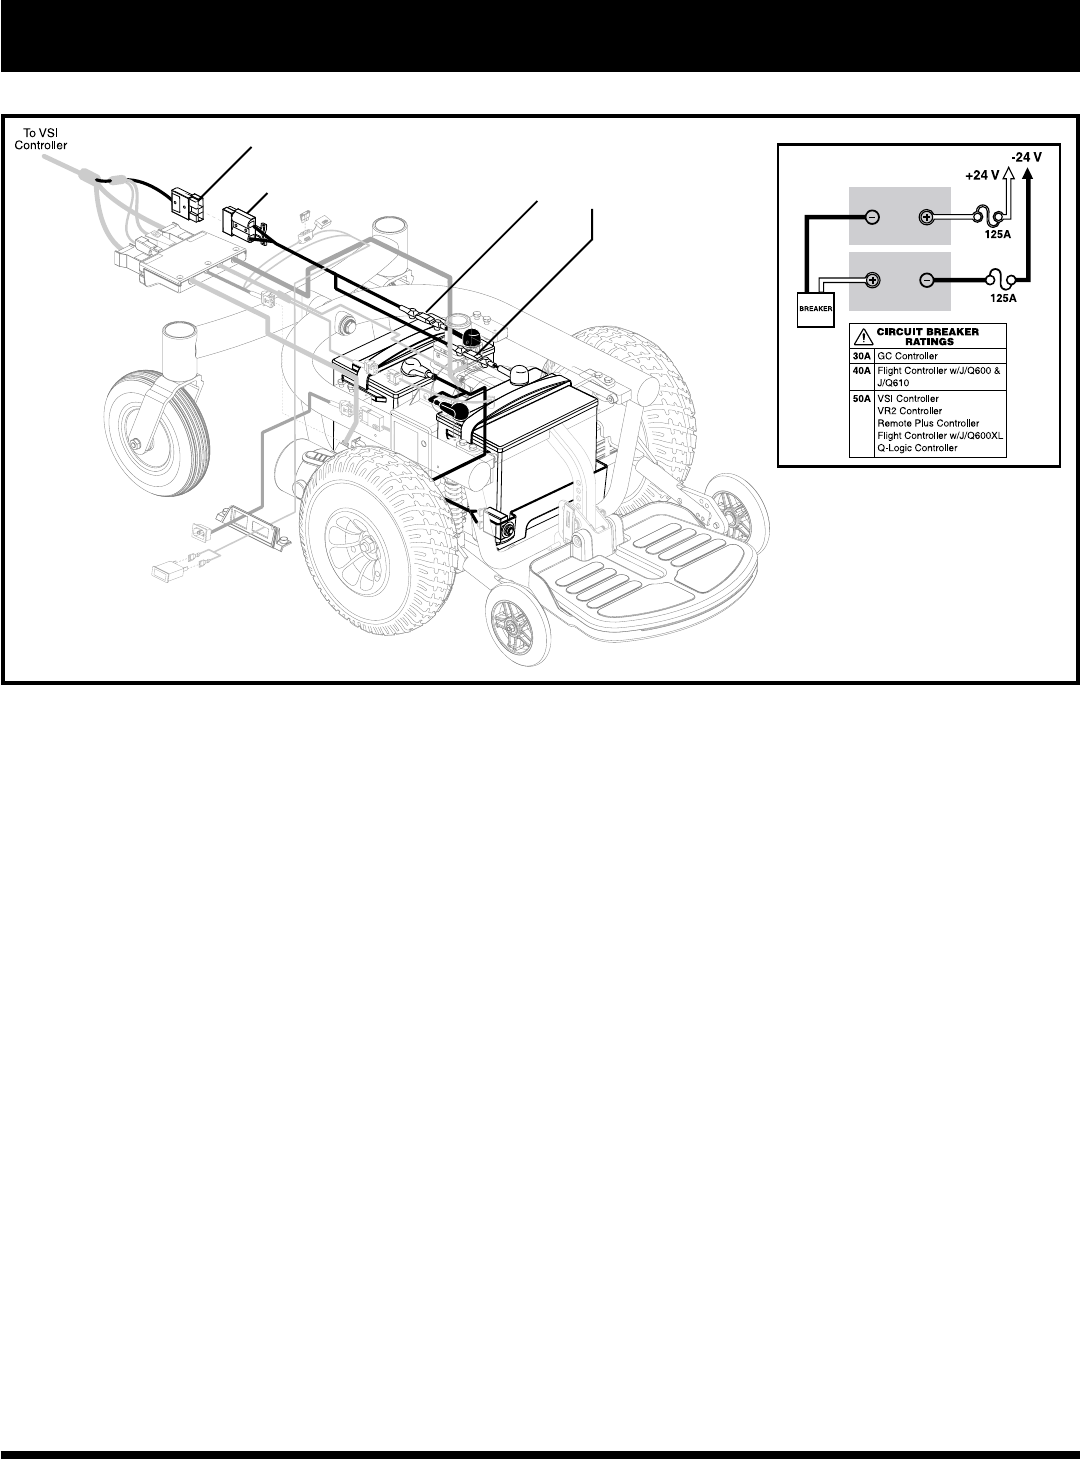 55cd0a64 9f56 4b5b bb6f 66cc883674a7 bg2c page 44 of pride mobility mobility aid 1103 ultra user guide jazzy power chair wiring diagram at cos-gaming.co